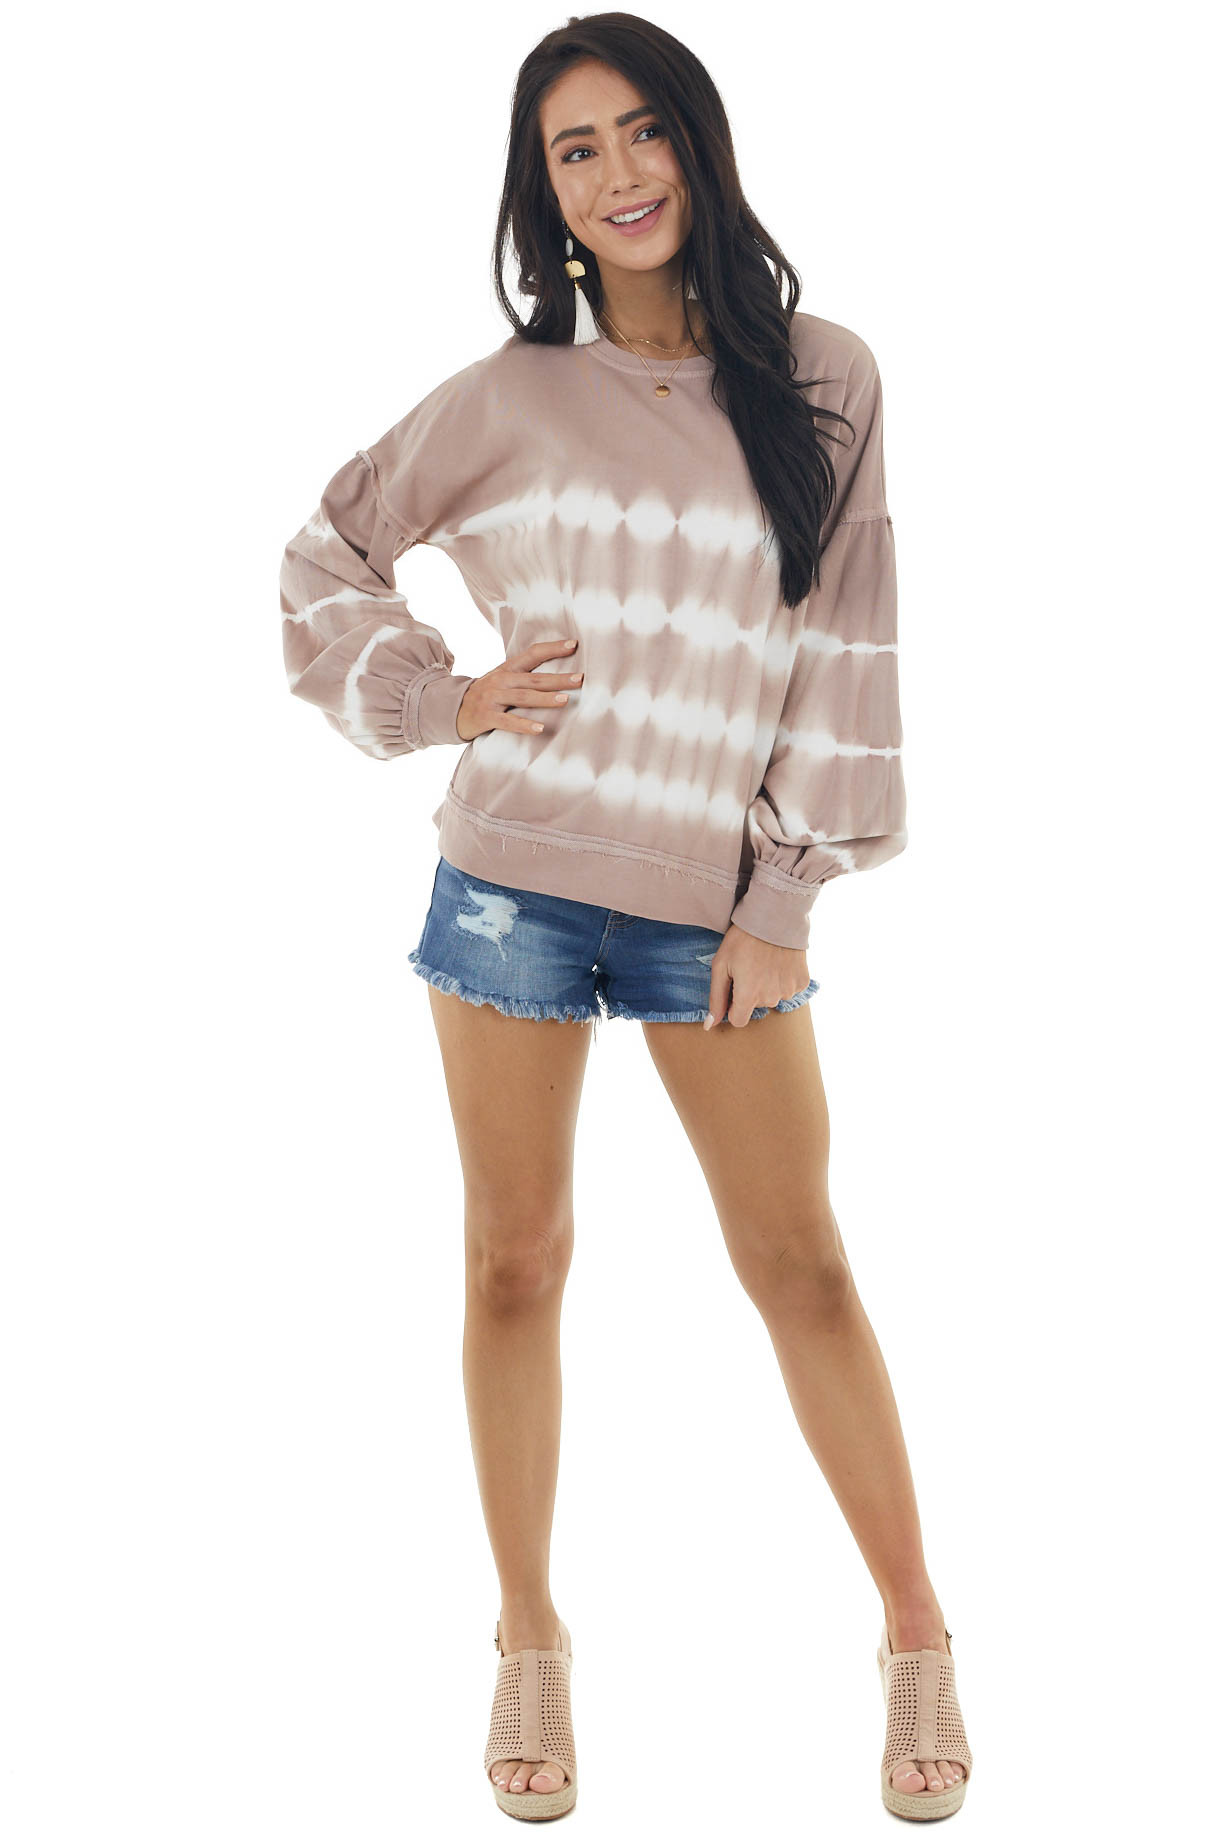 Dusty Rose Tie Dye Knit Top with Long Bubble Sleeves